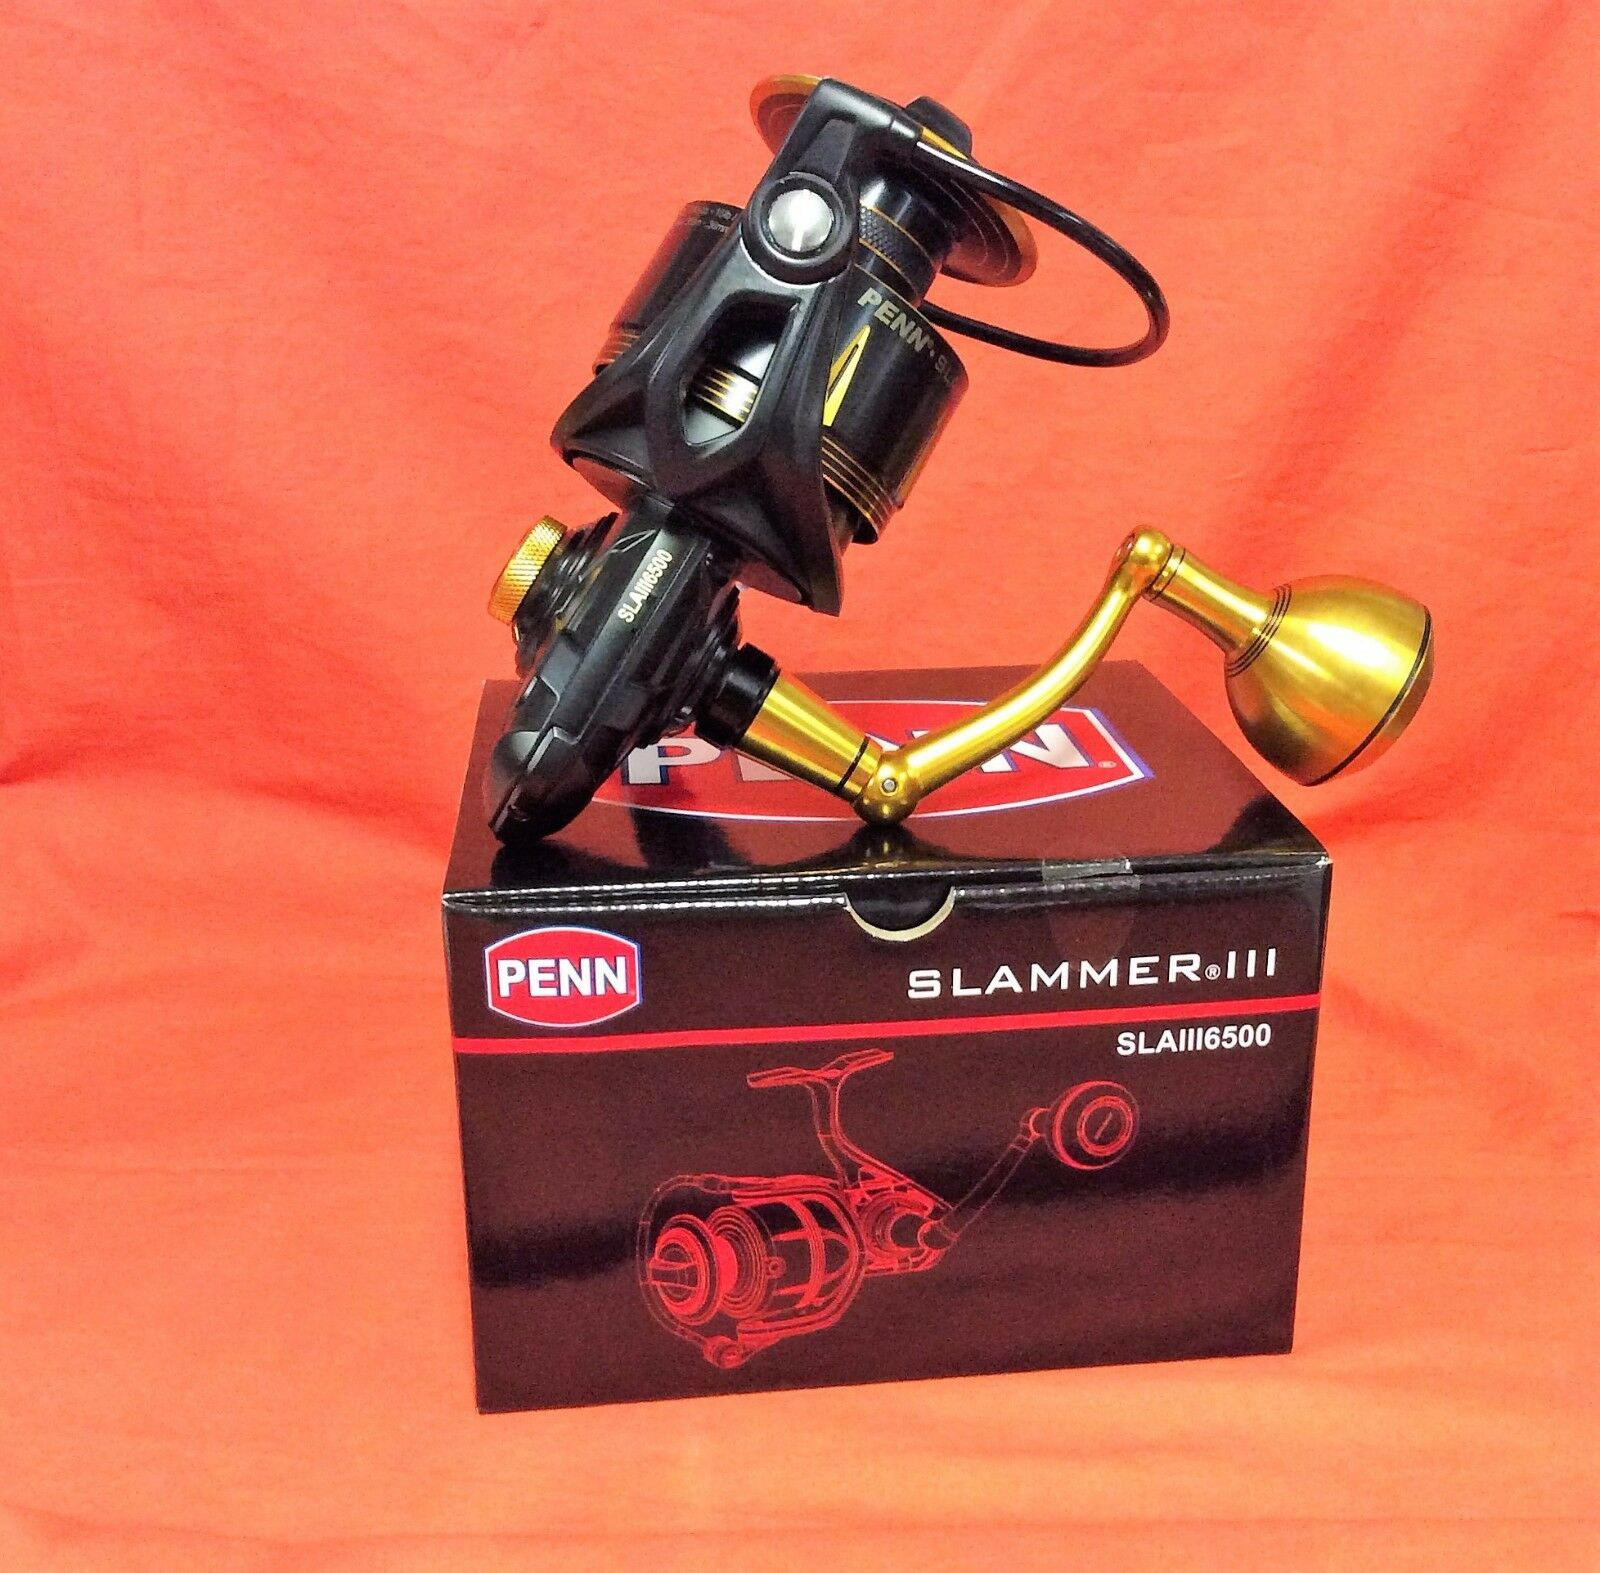 PENN Slammer III 6500 Spinning Reel Gear Ratio 5.6:1  1403985 (SLAIII6500)